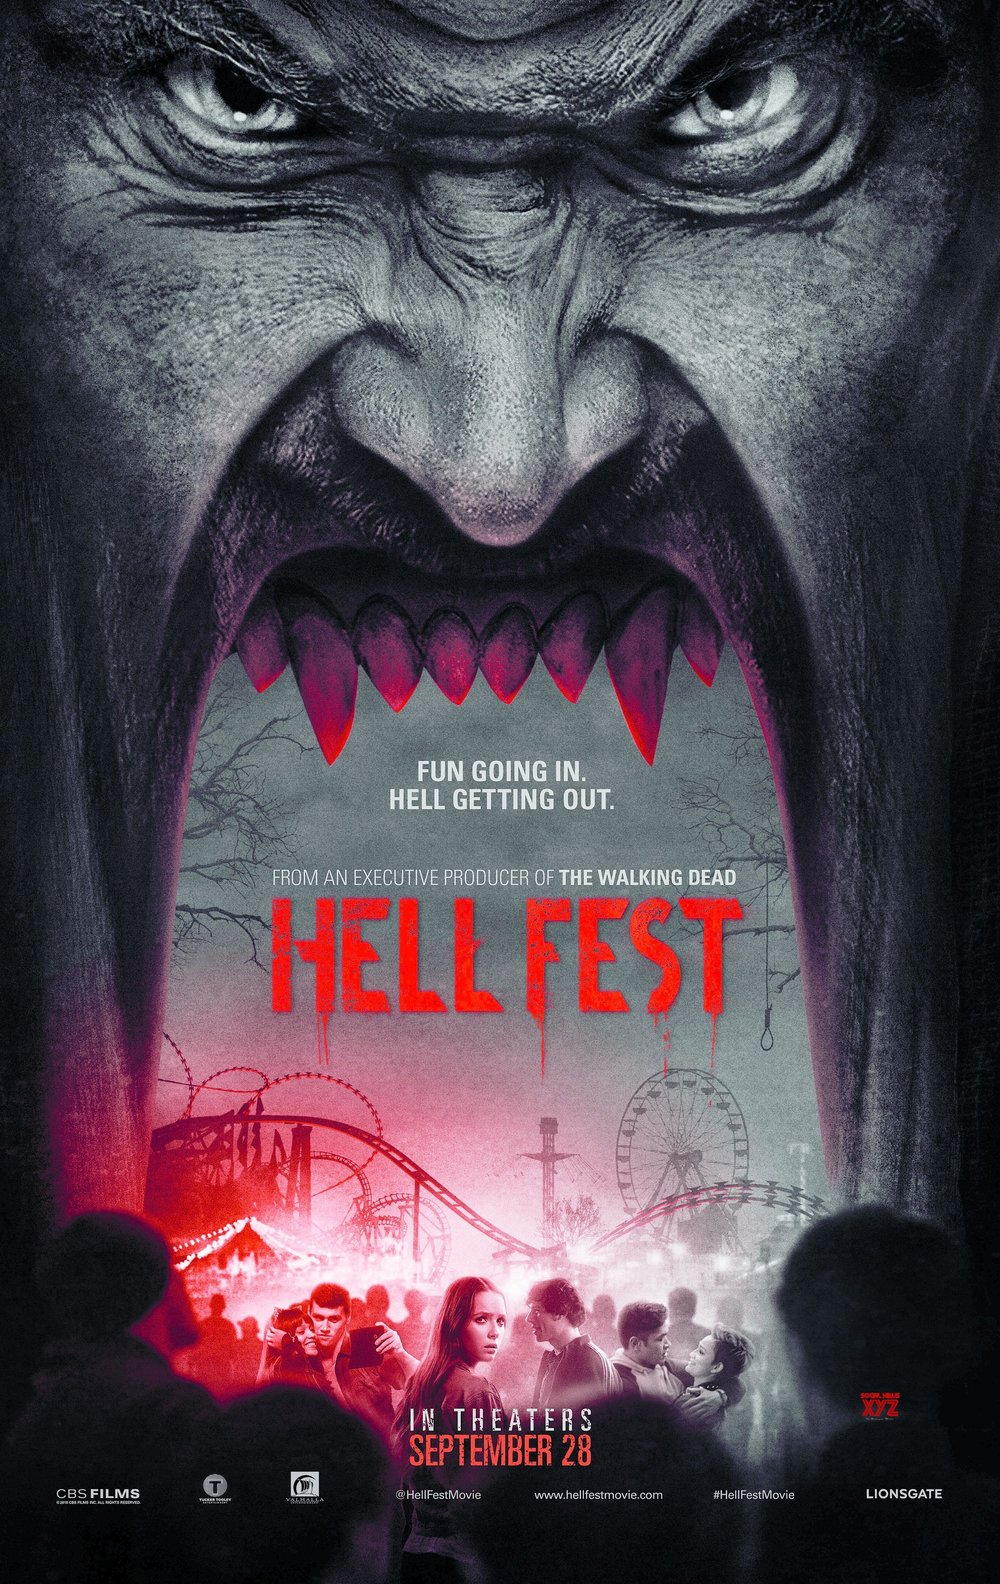 hell-fest-Movie-HD-Poster-and-Stills-.jpg